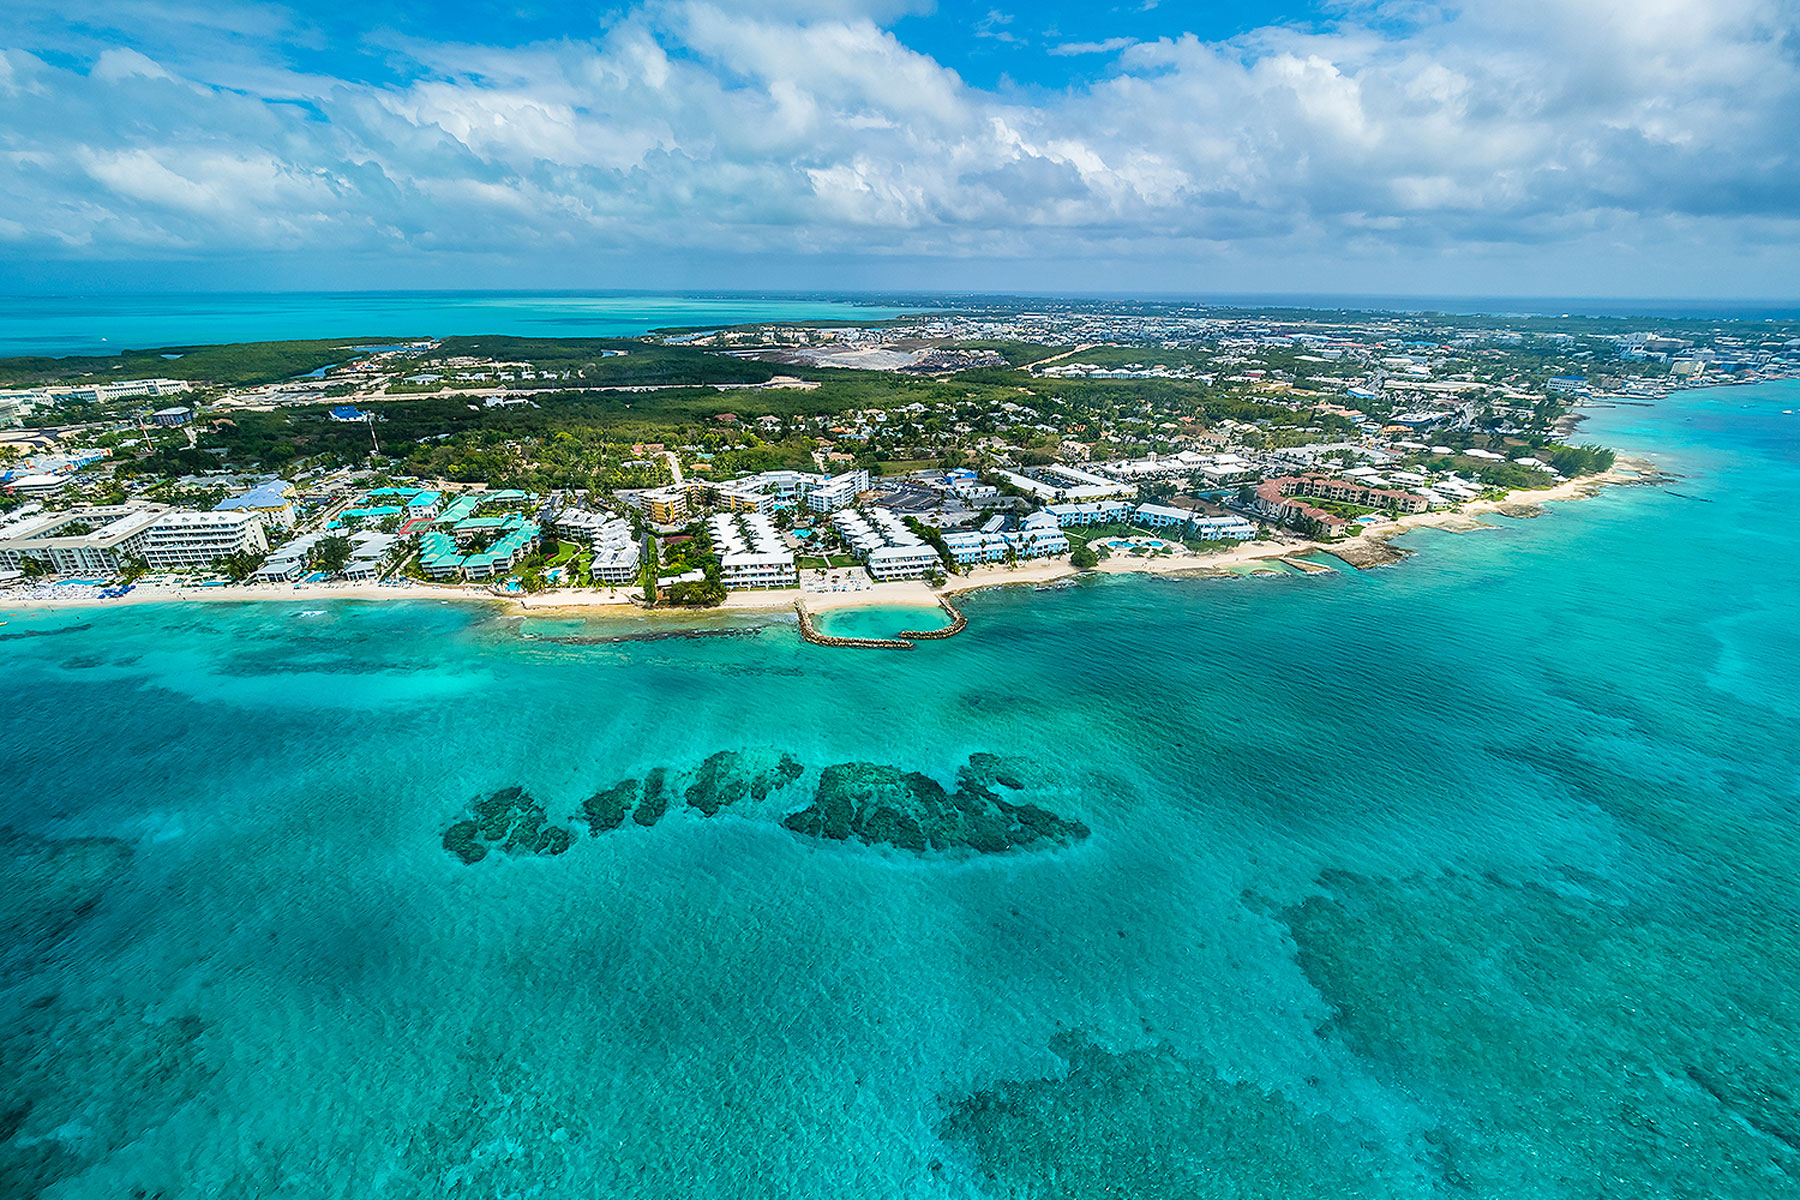 aerial view of Cayman Islands